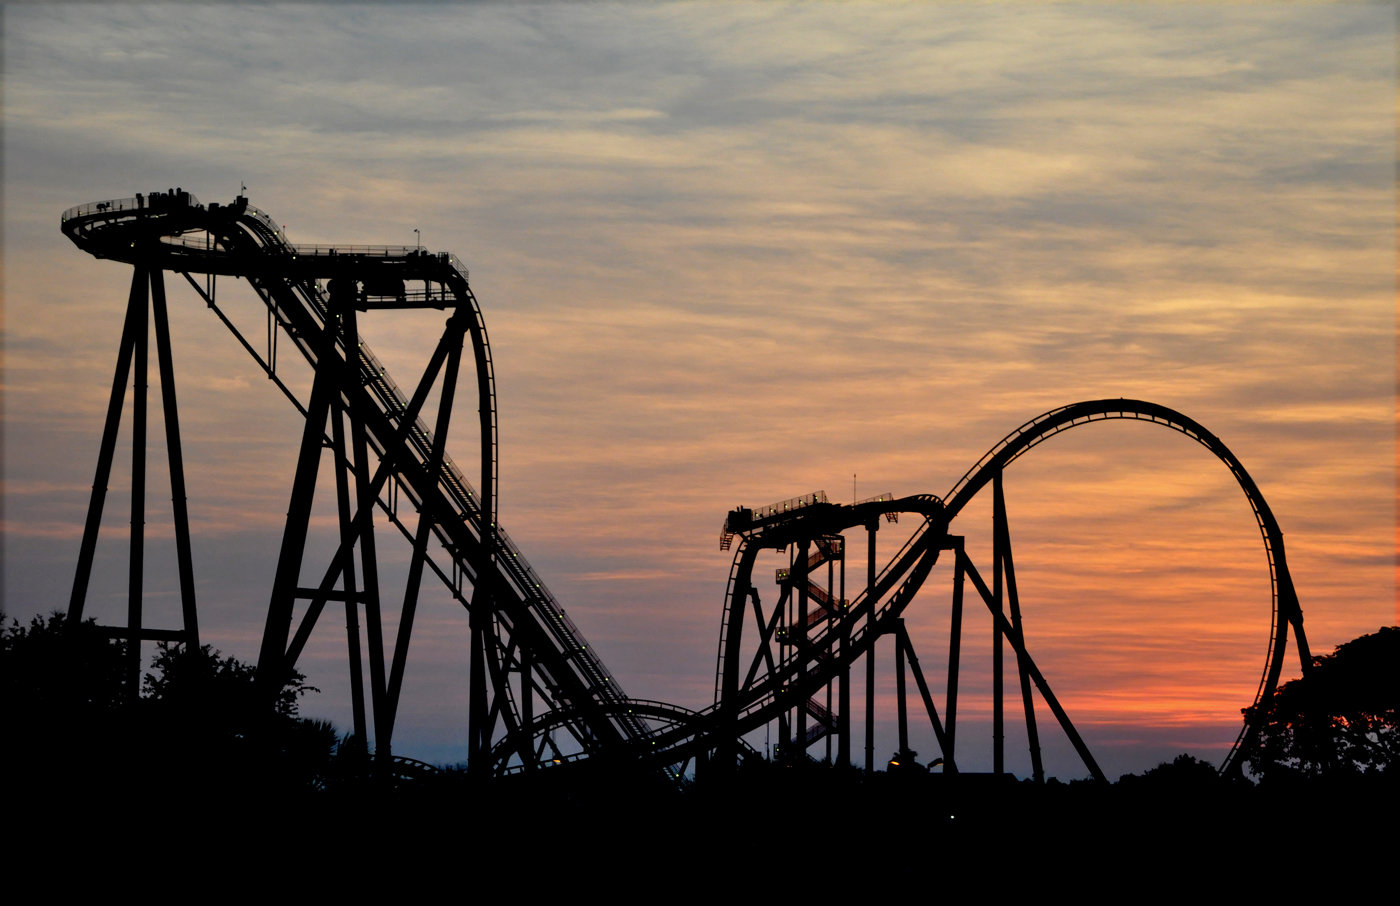 Theme Park, Thrill Park, Amusement Park – What's In A Name?